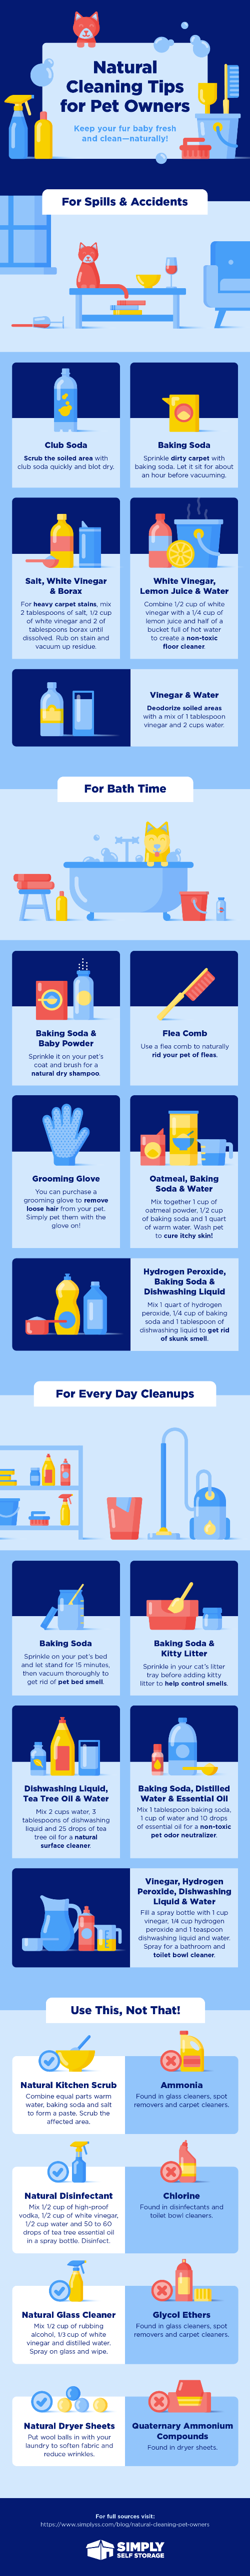 natural-cleaning-tips-for-pet-owners.png.pagespeed.ce.dQthaksBWH